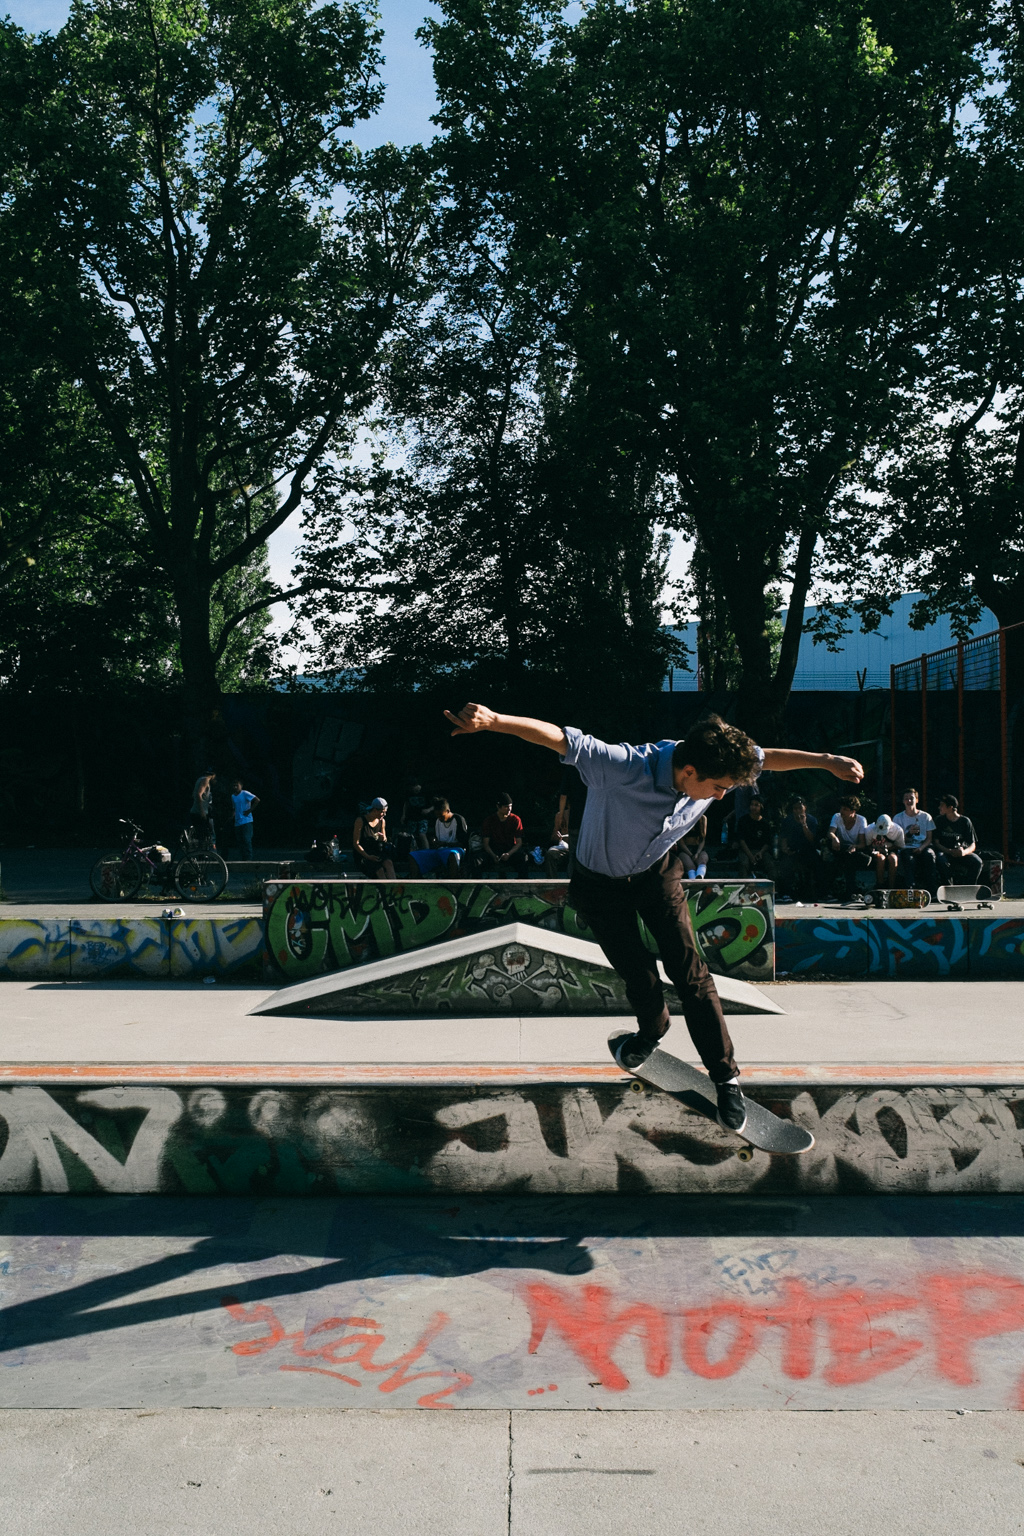 Nepomuk Herok, BS Smith Grind, Project DSS | fine lines Marketing GmbH